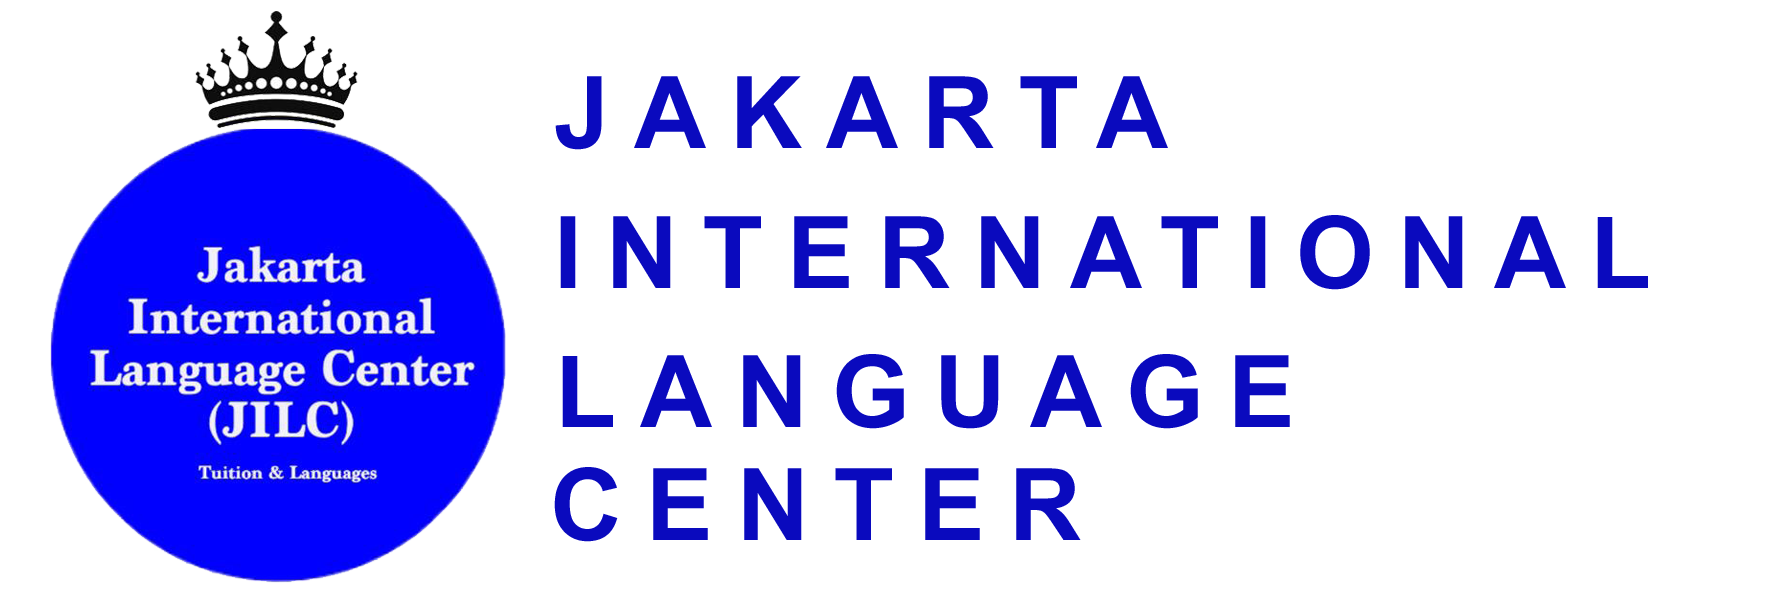 Jakarta International Language Center